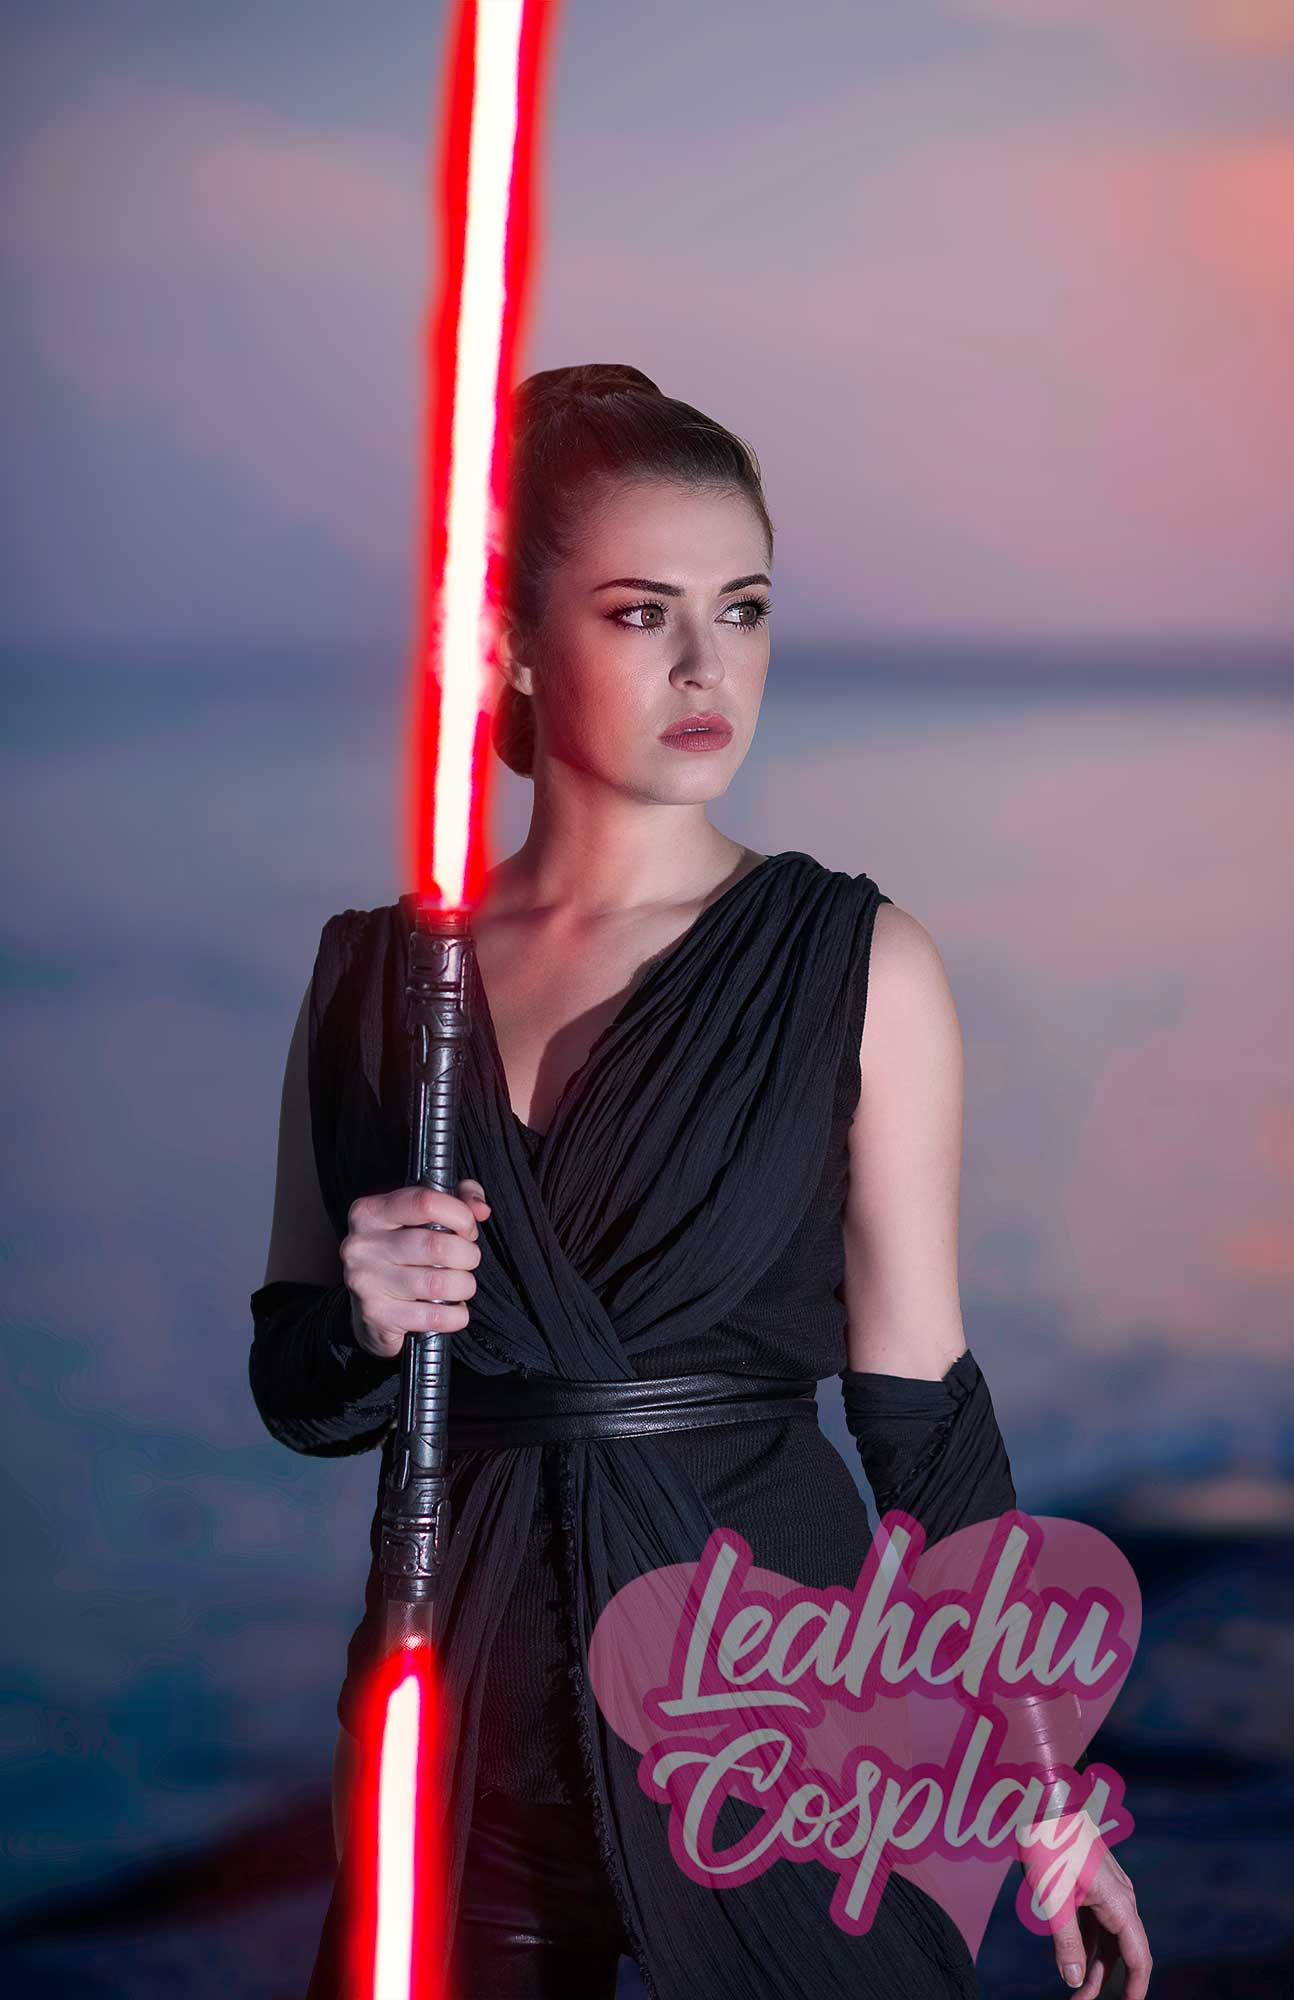 Dark Rey Cosplay Star Wars The Rise Of Skywalker 5 Sold By Leahchu Cosplay On Storenvy